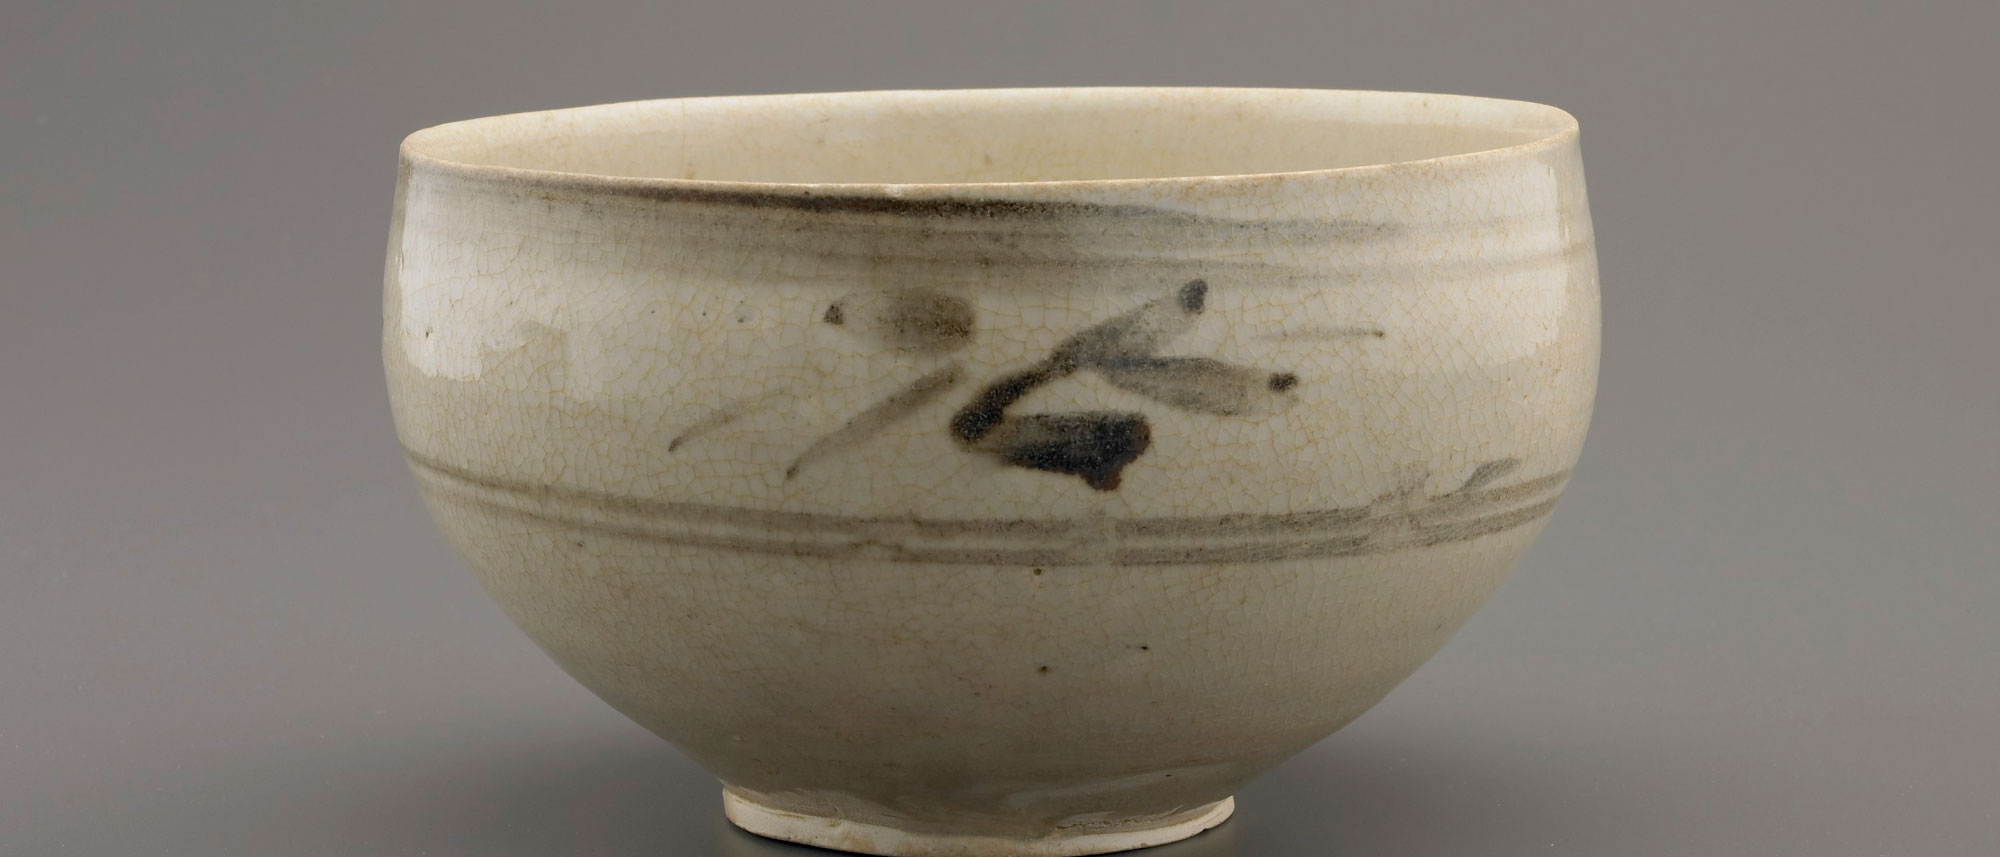 detail of a ceramic bowl, glazed a light beige, with a darker decoration